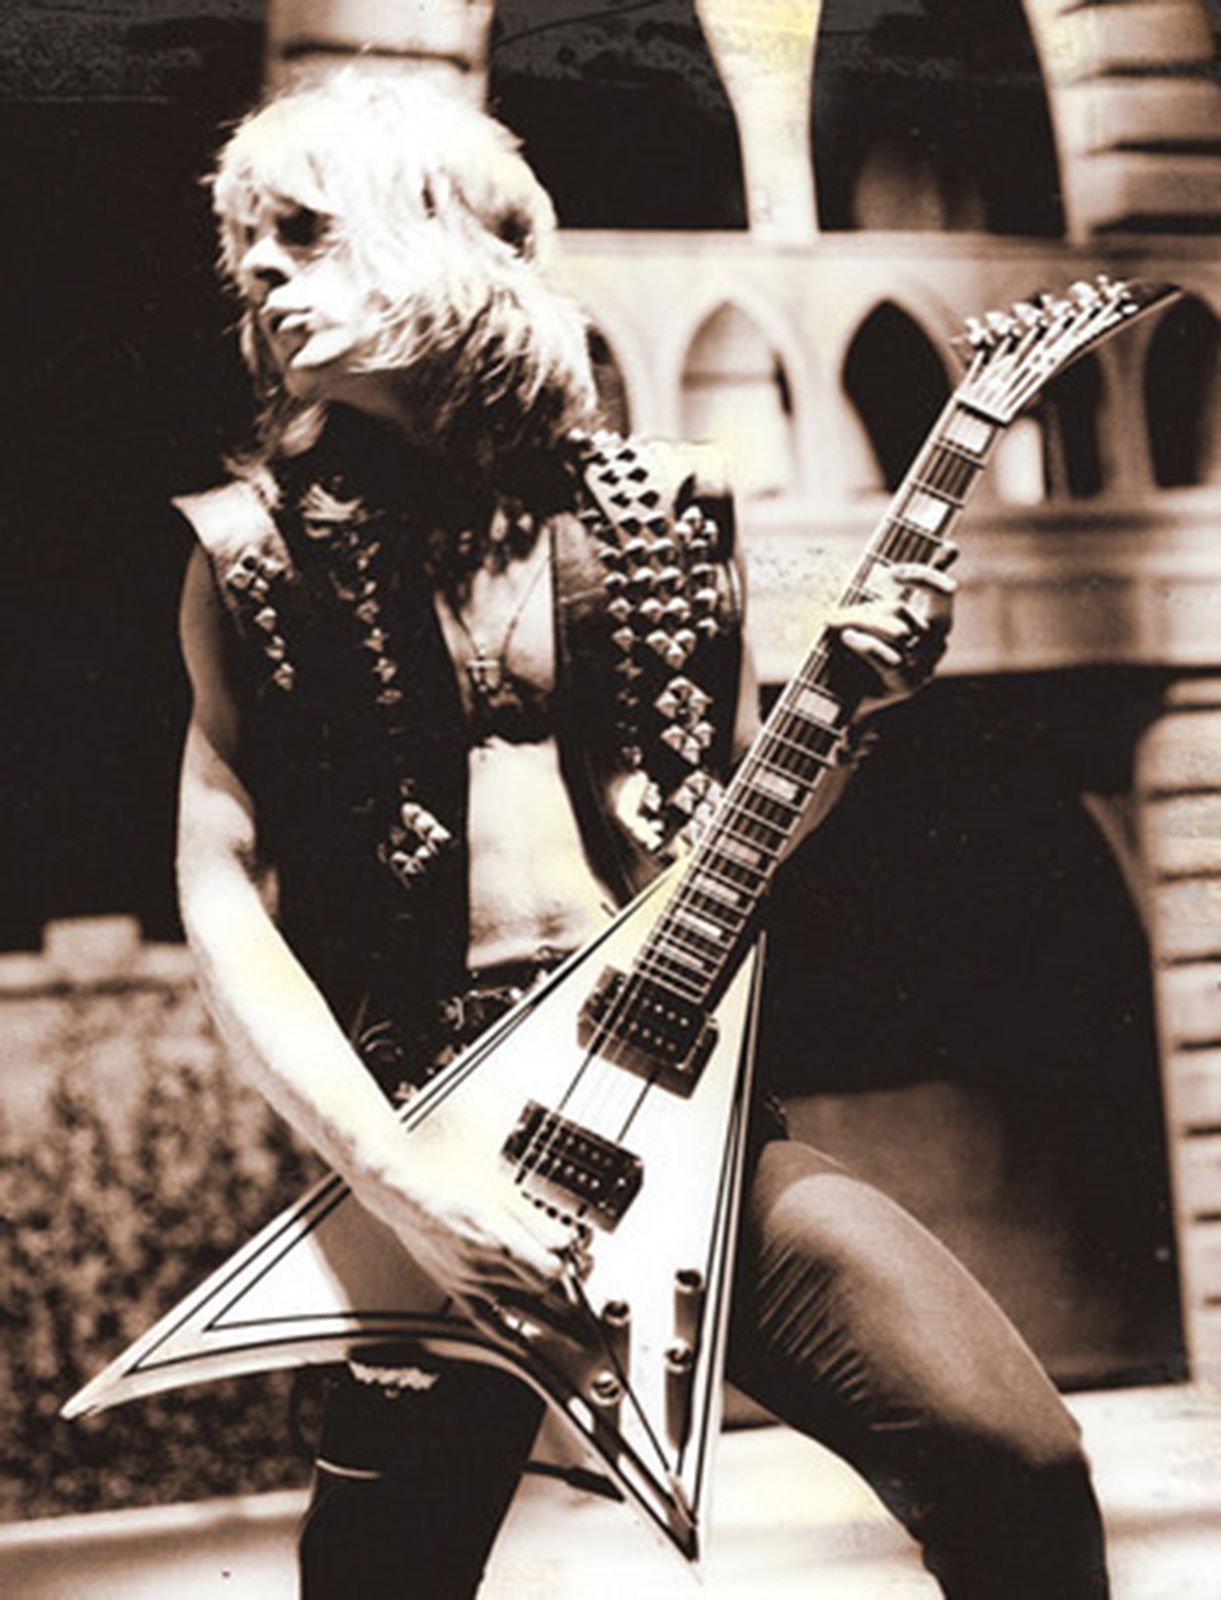 Randy Rhoads with his Flying V-style guitar